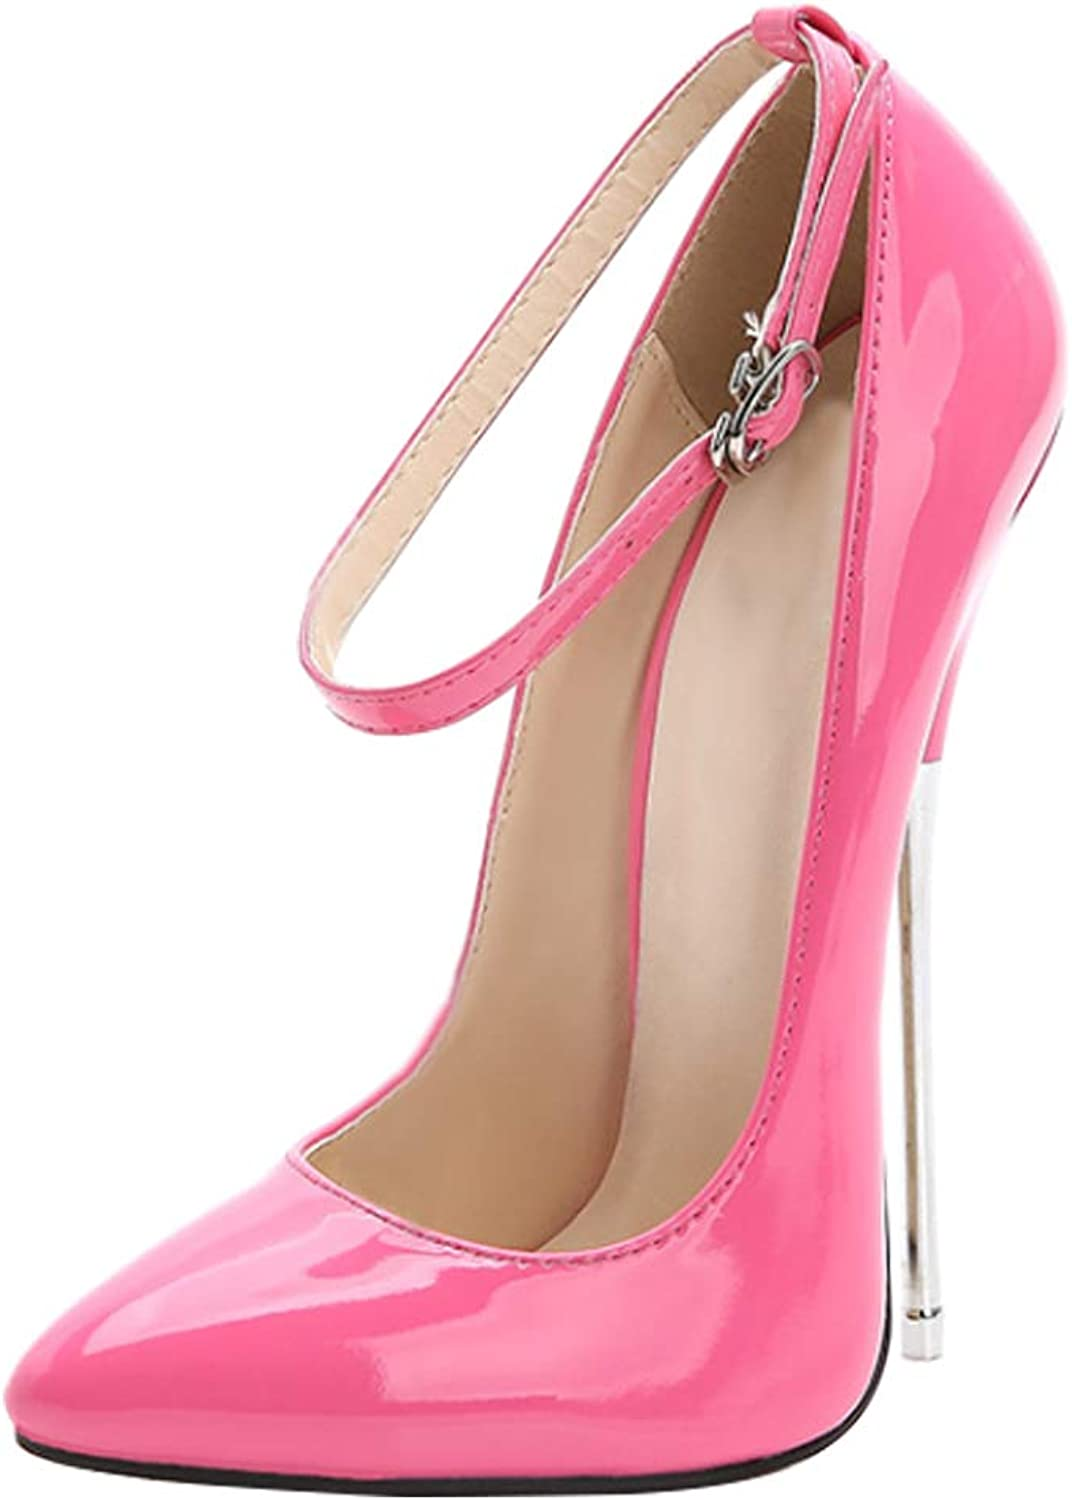 Uirend shoes Women Pumps Heels - High Heel Strappy Pointed Toes Fashion Slip On Dress Sexy shoes